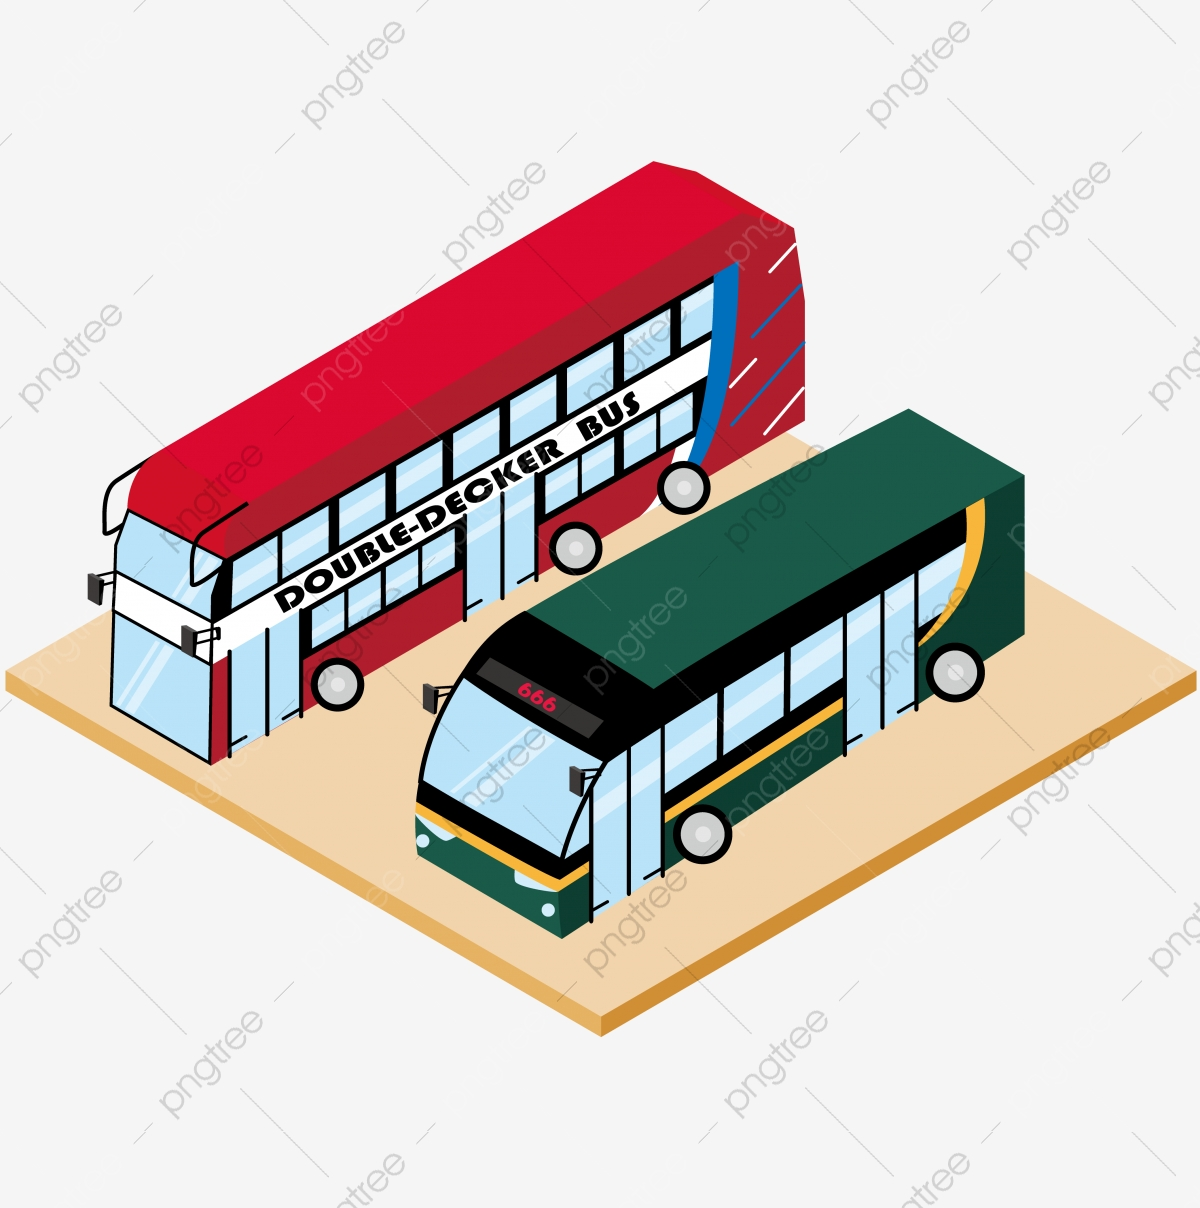 2 5d Stereo Illustration Hand Drawn Red Double Decker Bus Green Extended Bus Transportation Industry Business British Style Double Decker Bus Png And Vector With Transparent Background For Free Download